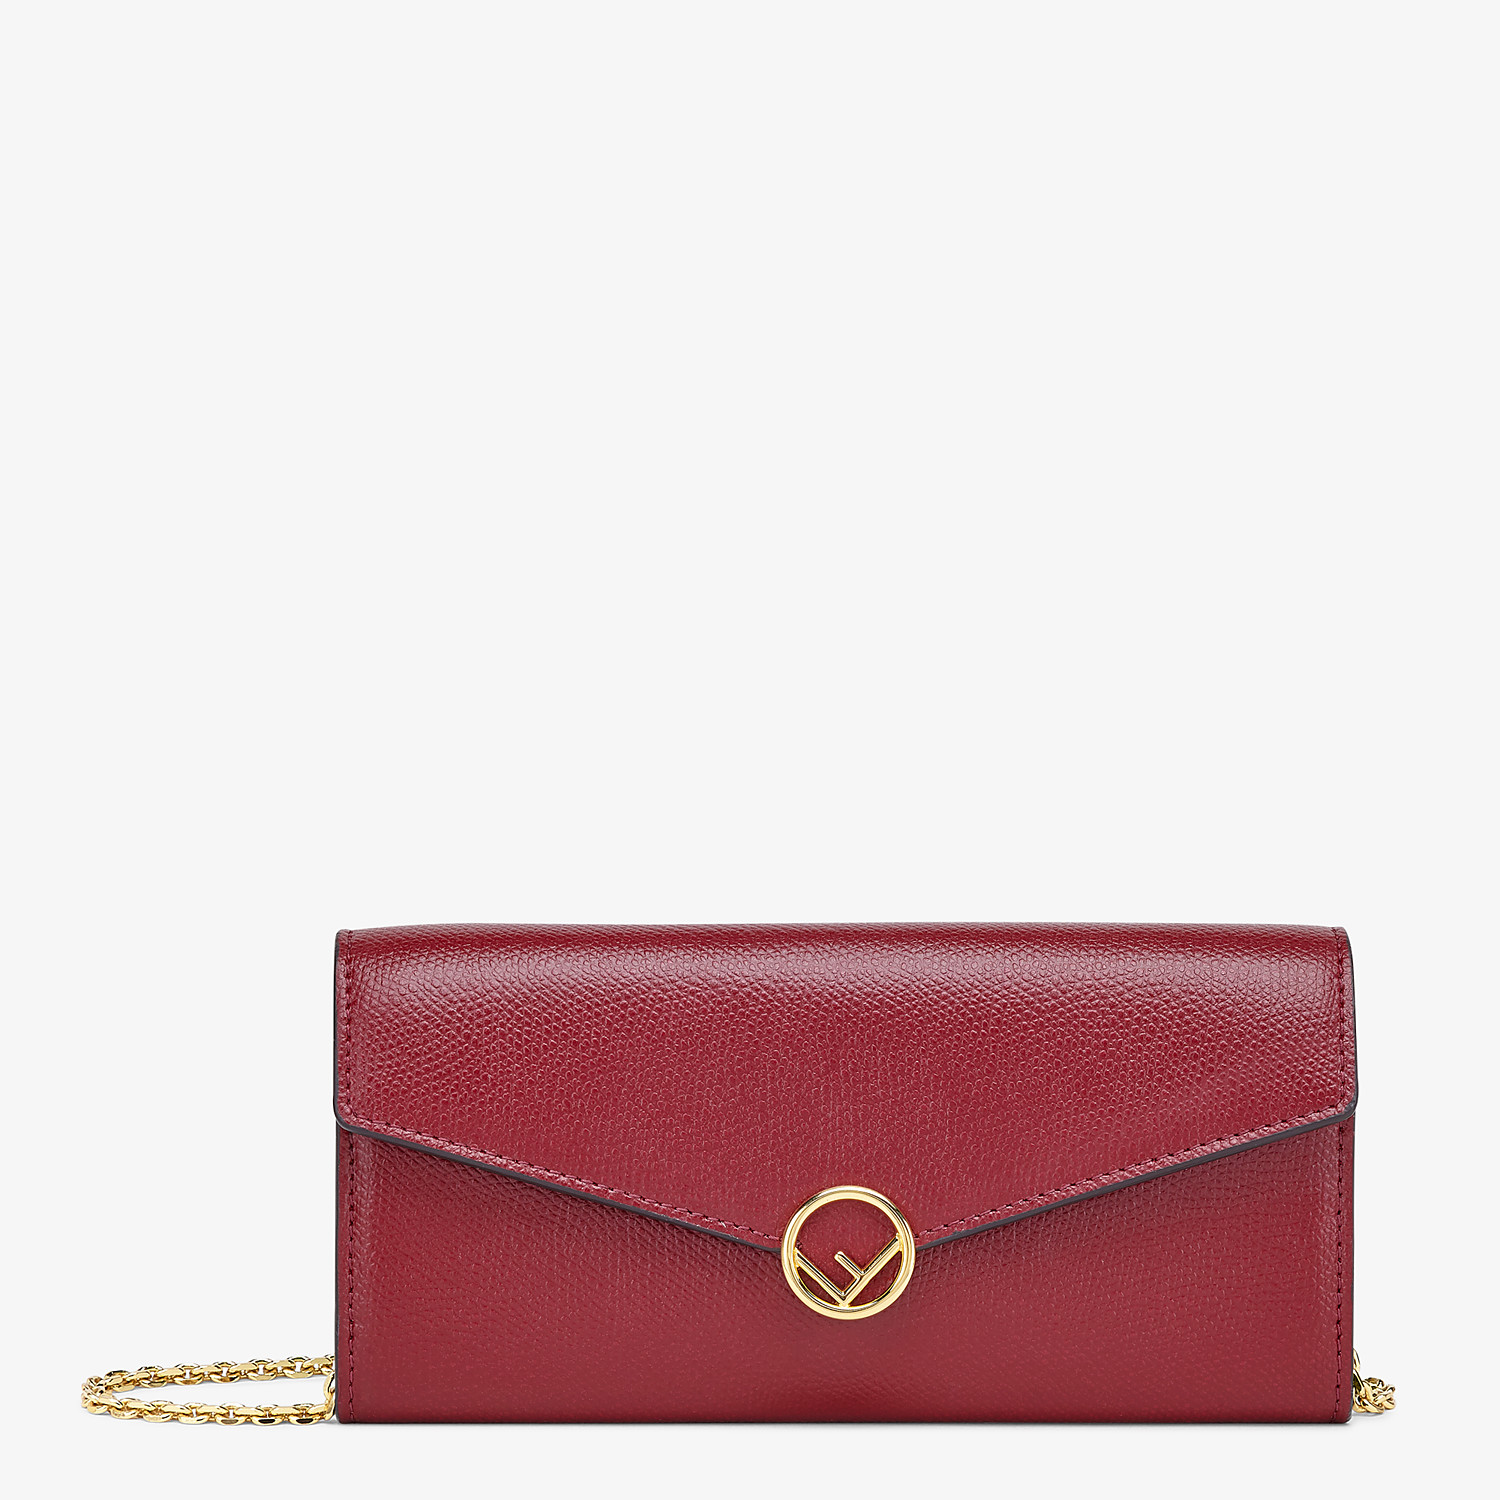 FENDI CONTINENTAL WITH CHAIN - Burgundy leather wallet - view 1 detail